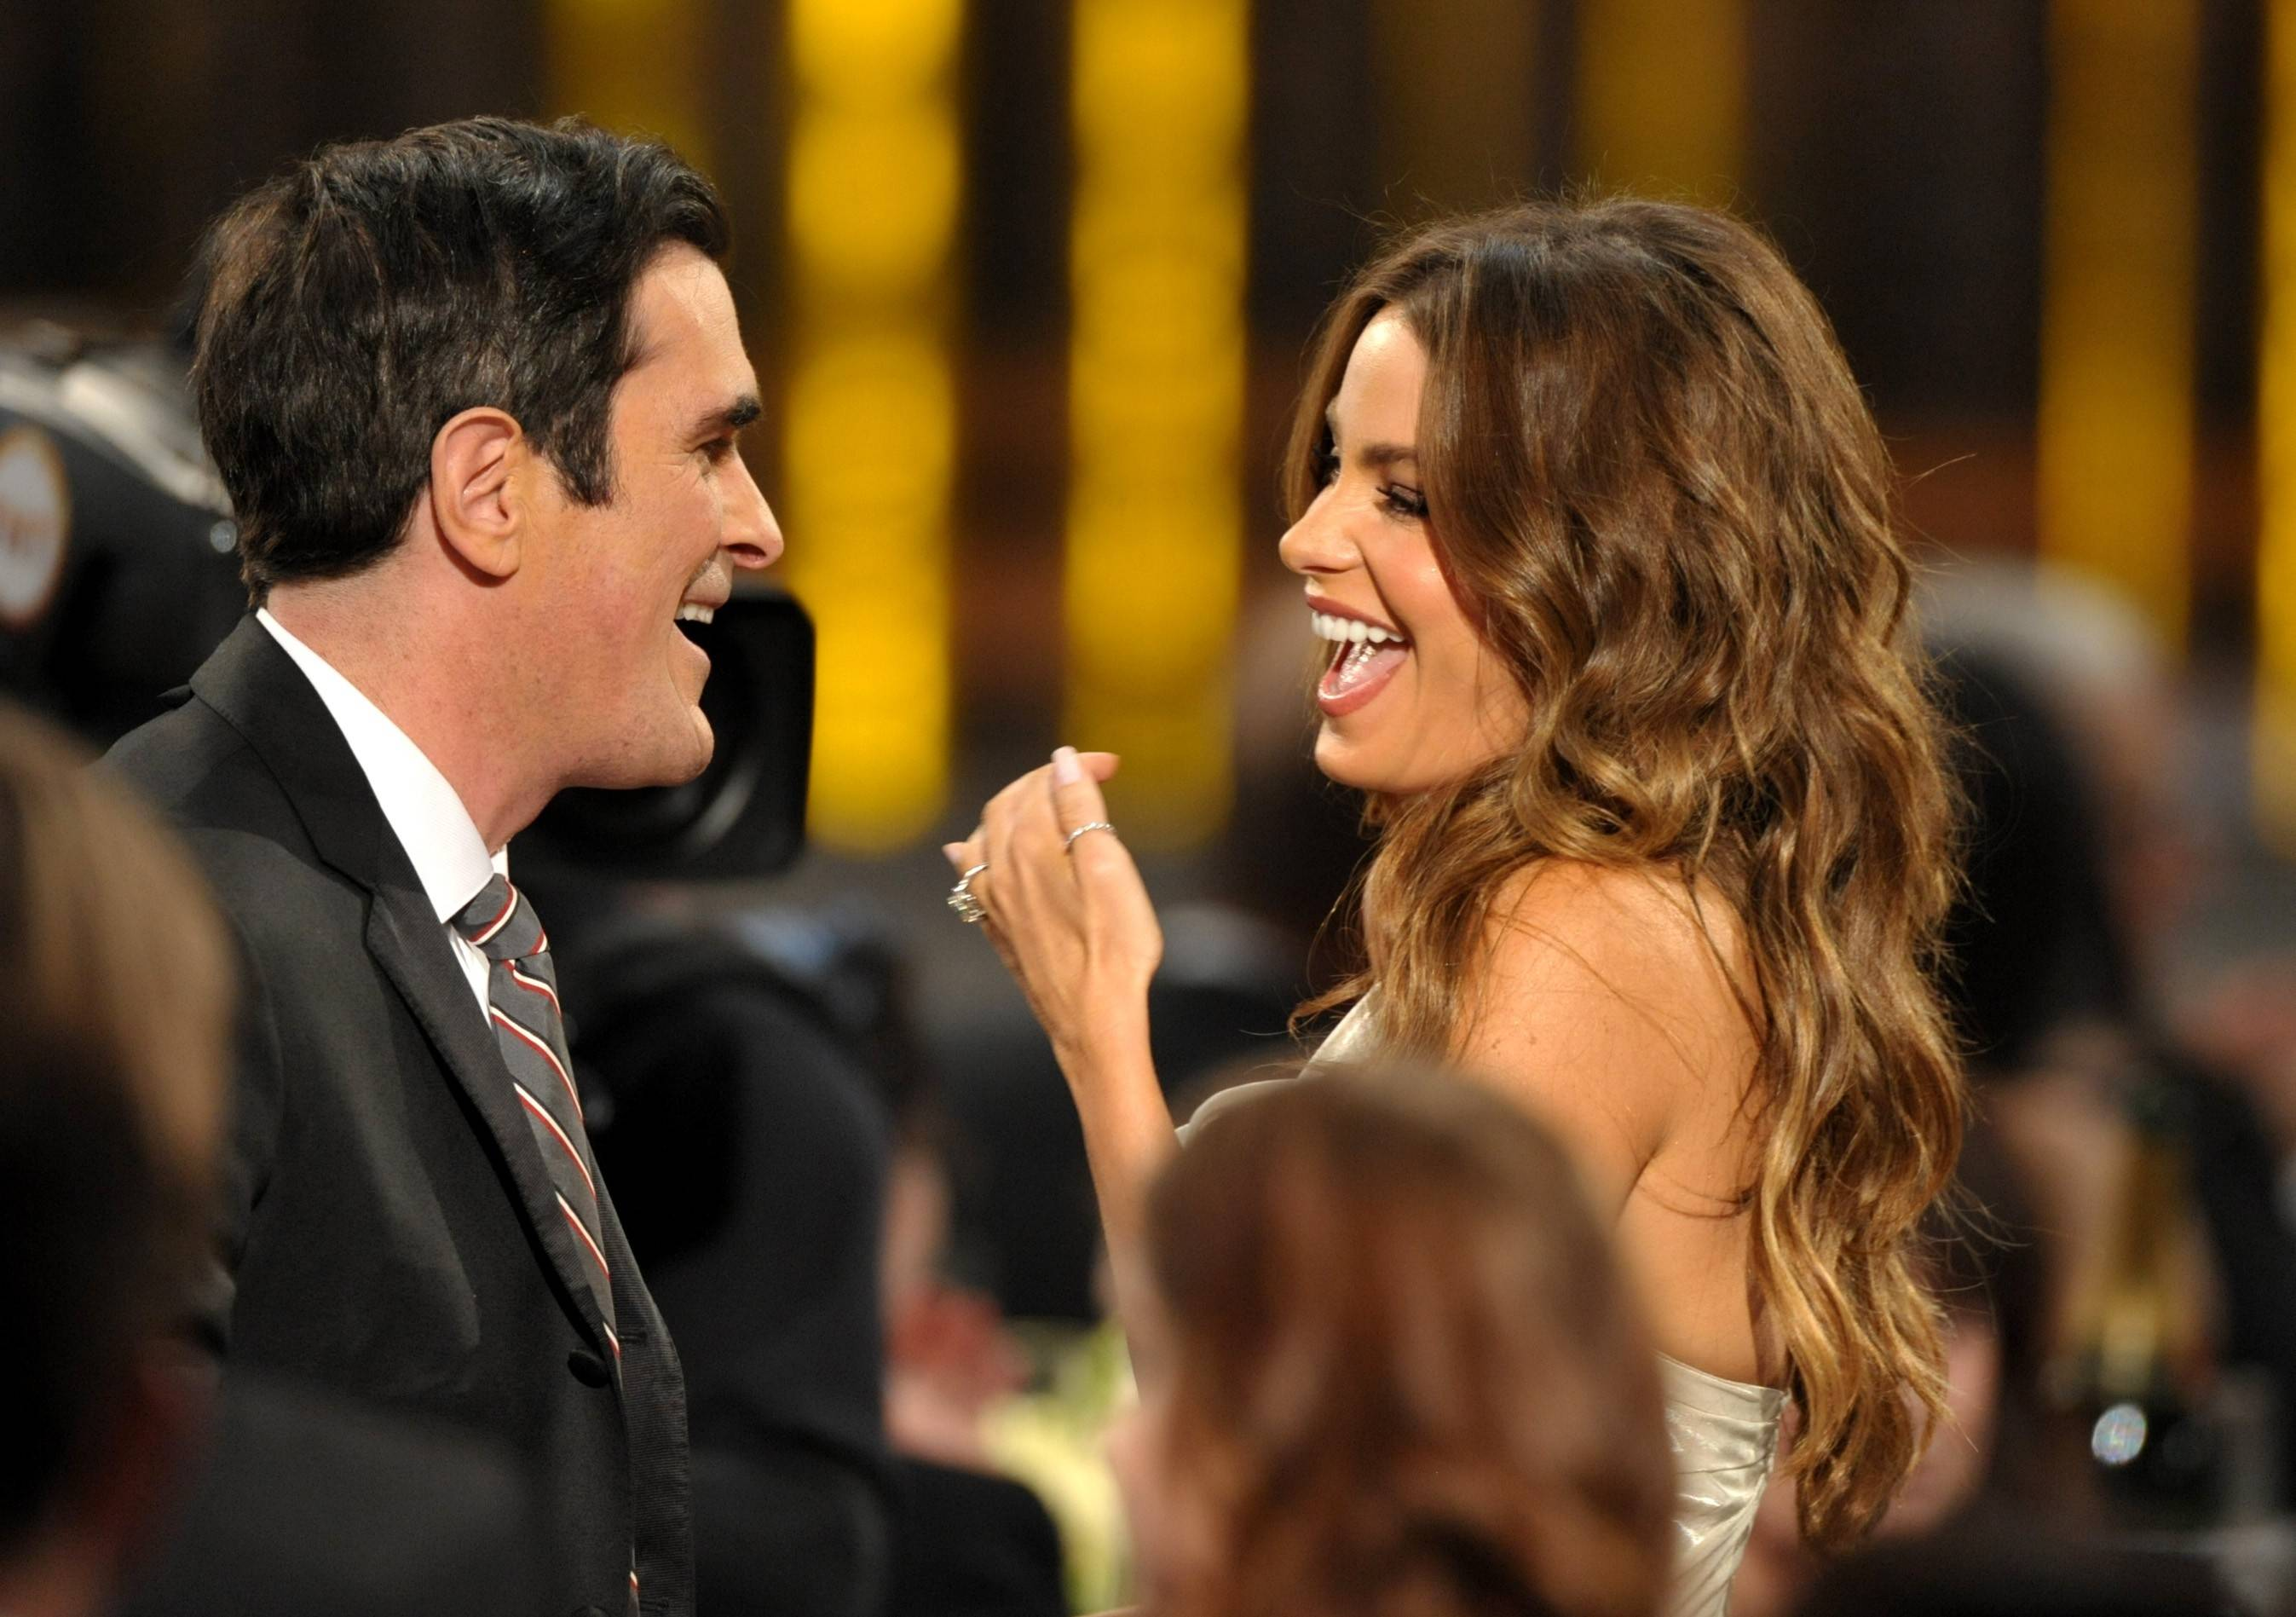 """Modern Family"" co-stars Ty Burell And Sofia Vergara have a little laugh at the SAG Awards. The show would go on to win for the entire ensemble."